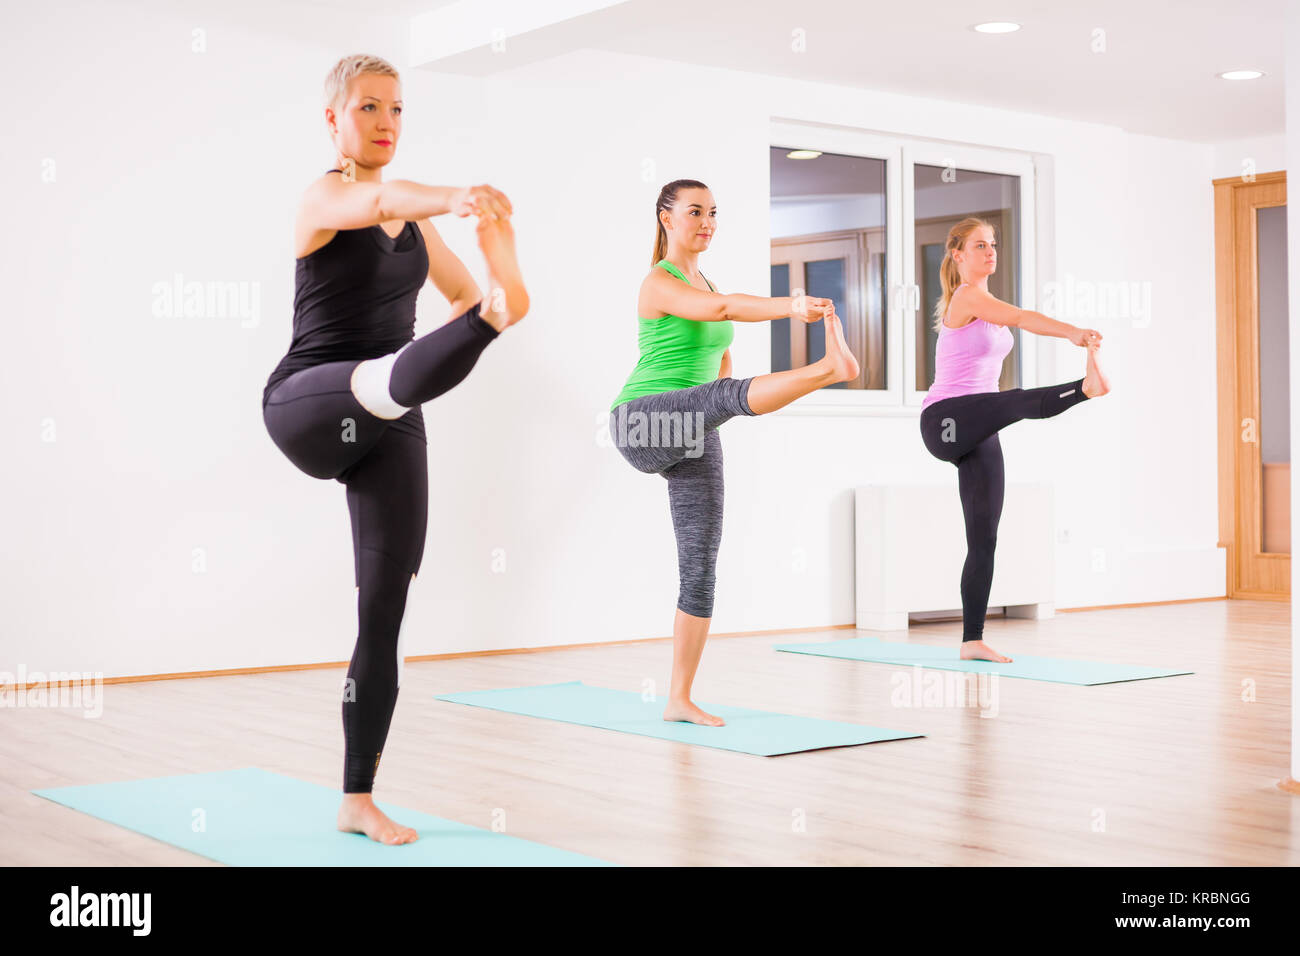 Three girls practicing yoga, Padangusthasana / Hand to big toe pose - Stock Image